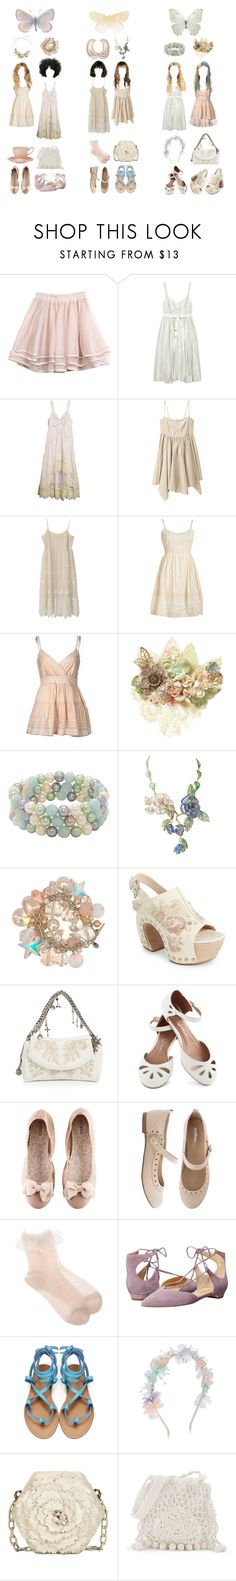 """""""Field trip ver.10 {soft as butterflies wings}"""" by aurenfaie ❤ liked on Polyvore featuring Twenty8Twelve, Timo Weiland, VILA, Her Curious Nature, Honora, Tarina Tarantino, Theory, Alexander McQueen, Jeffrey Campbell and H&M"""